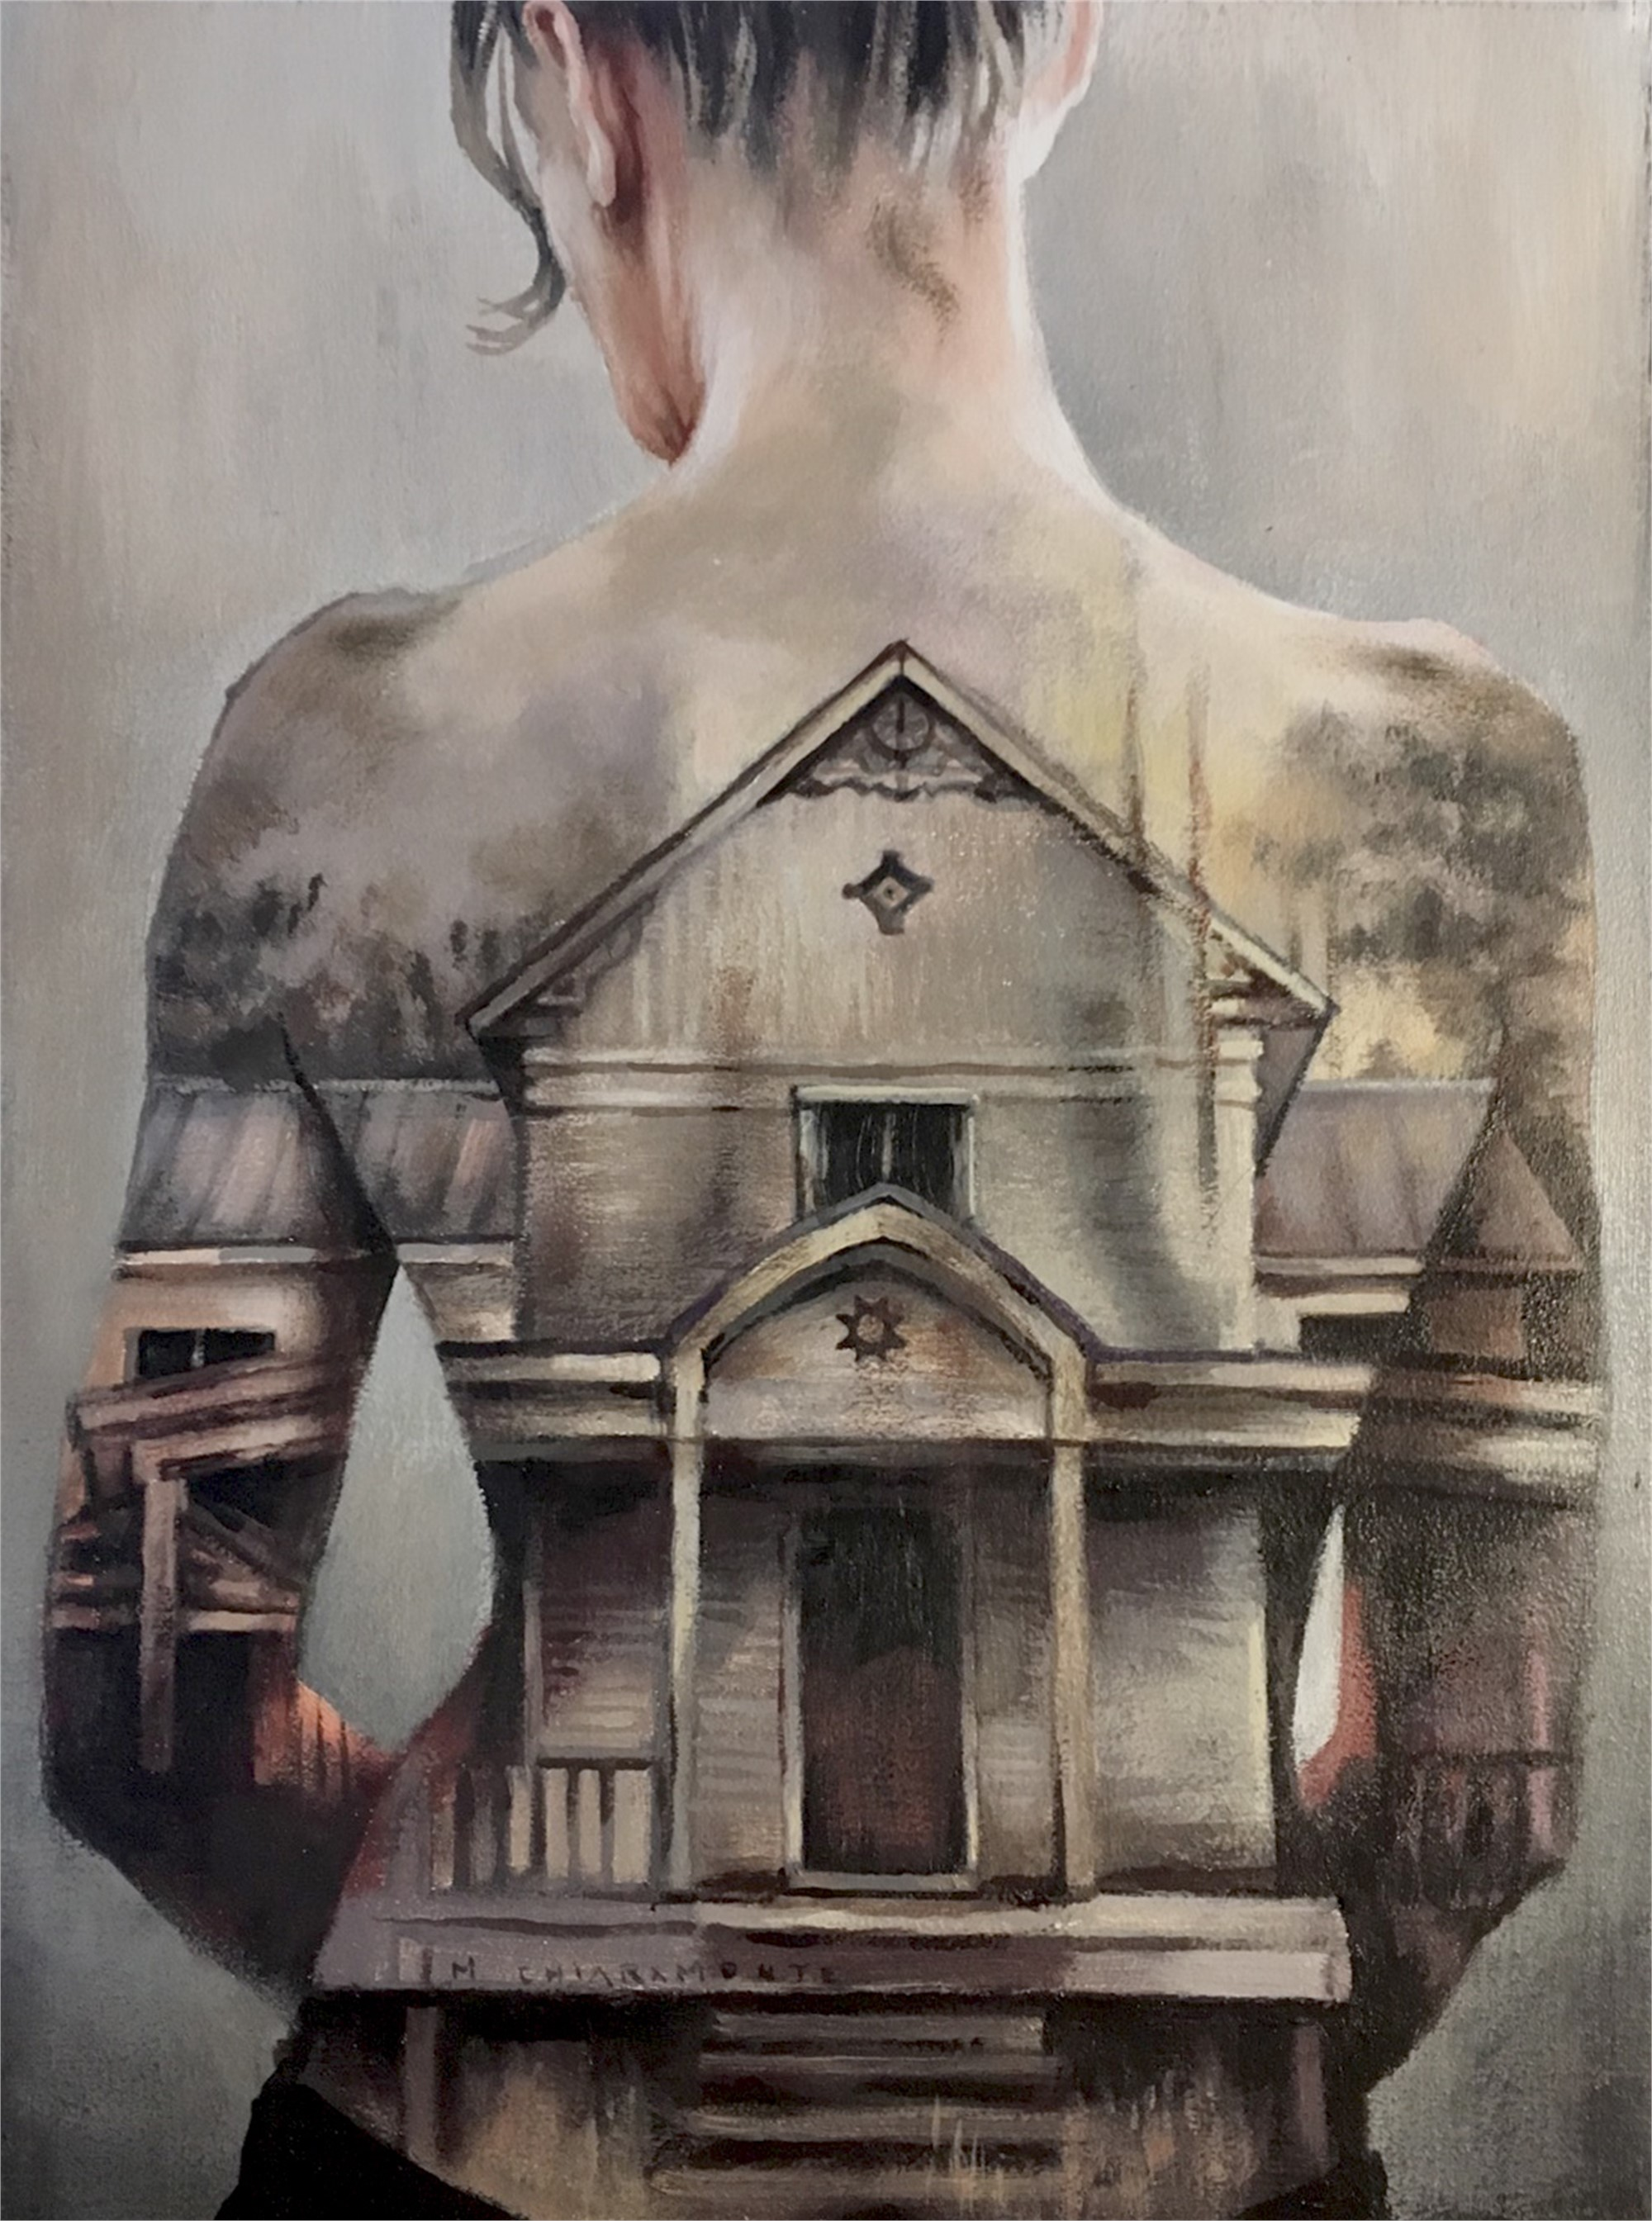 The Faded by Mary Chiaramonte